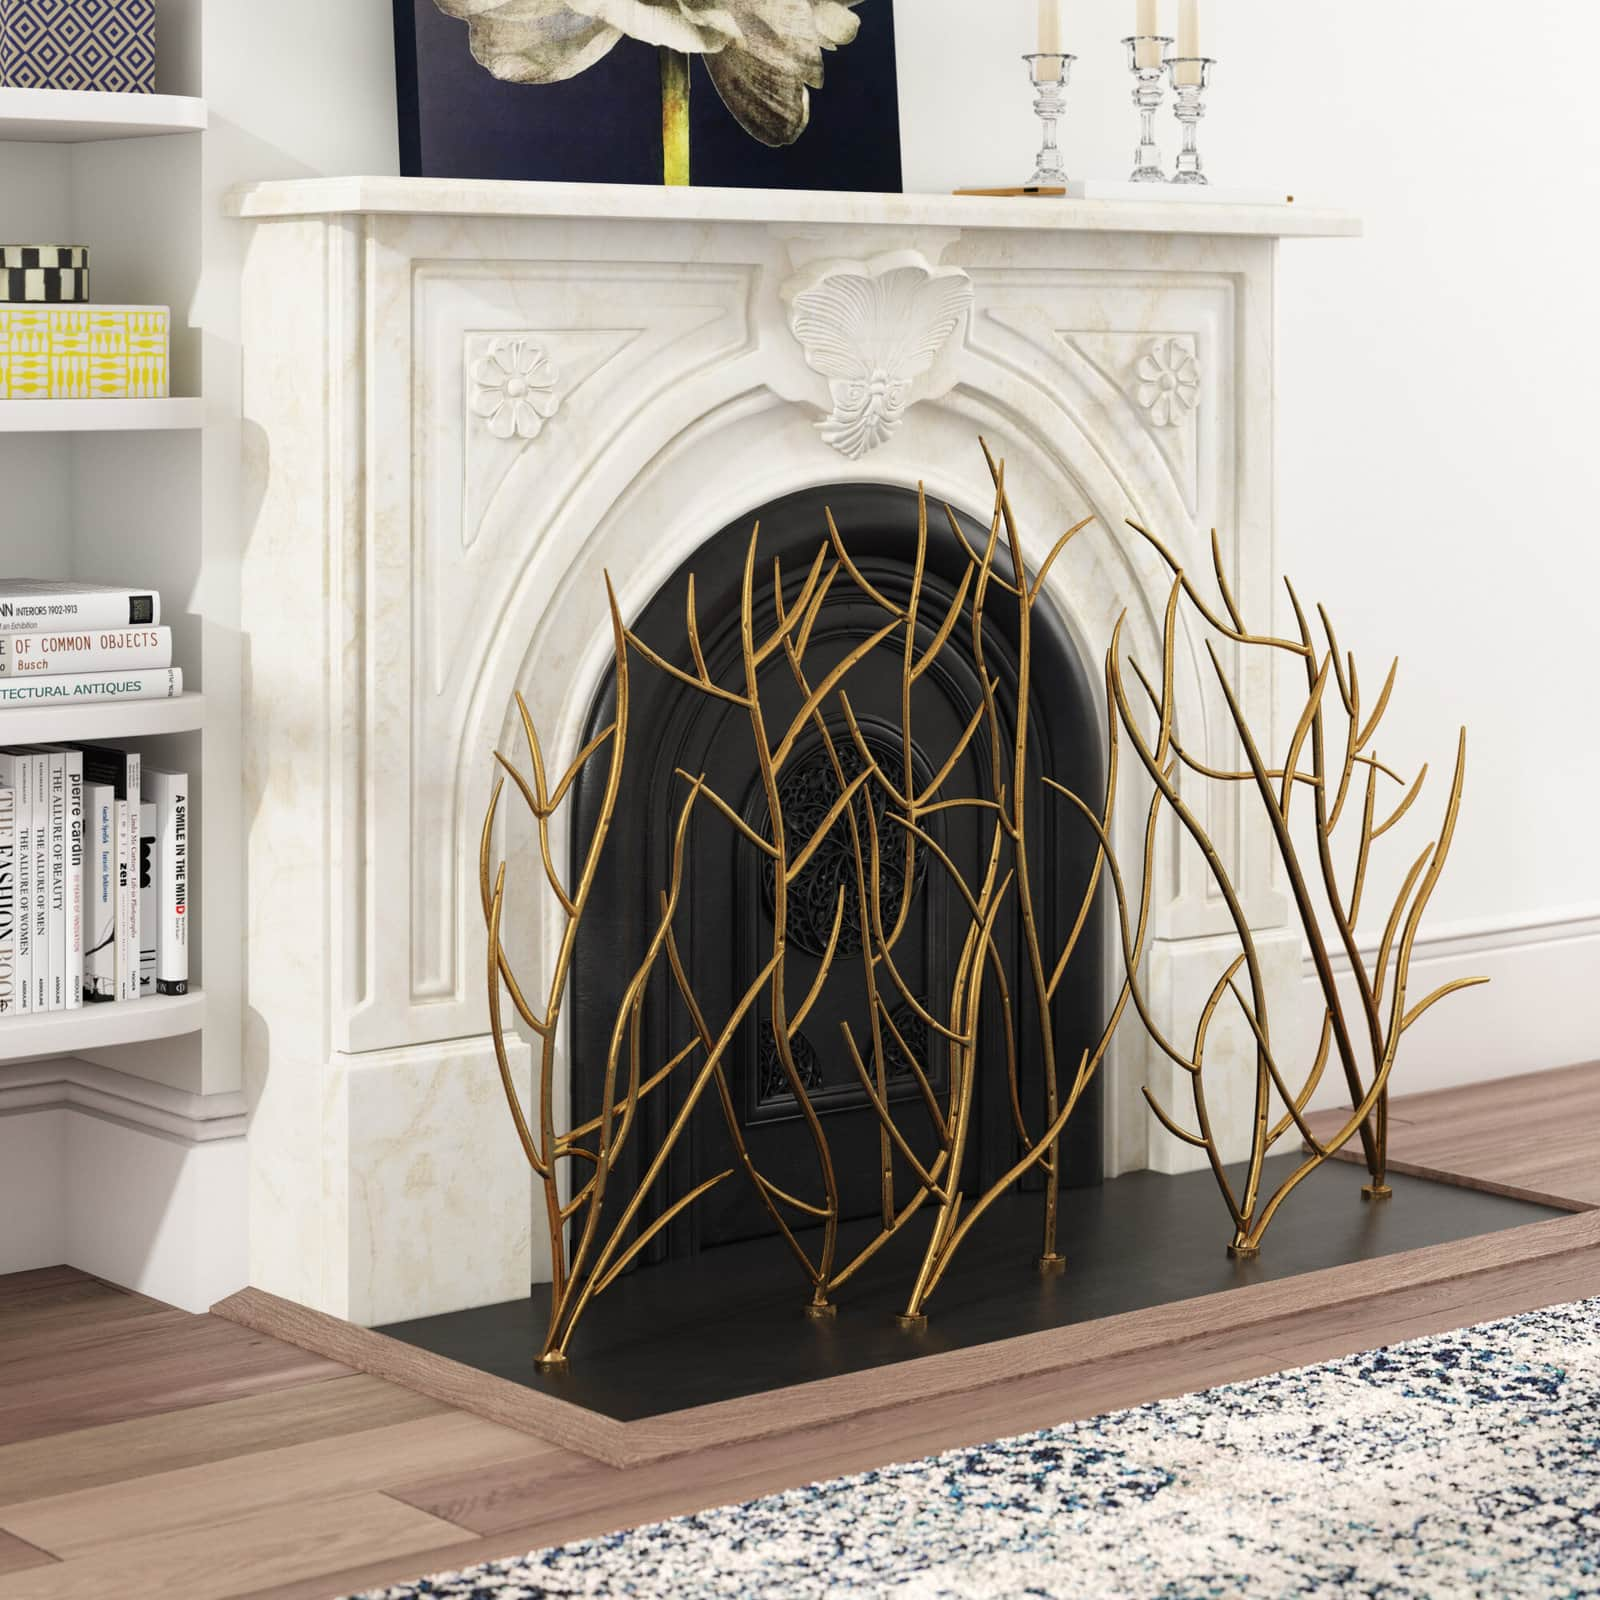 <strong>Upgrade Your Fireplace with a Unique Firescreen</strong>